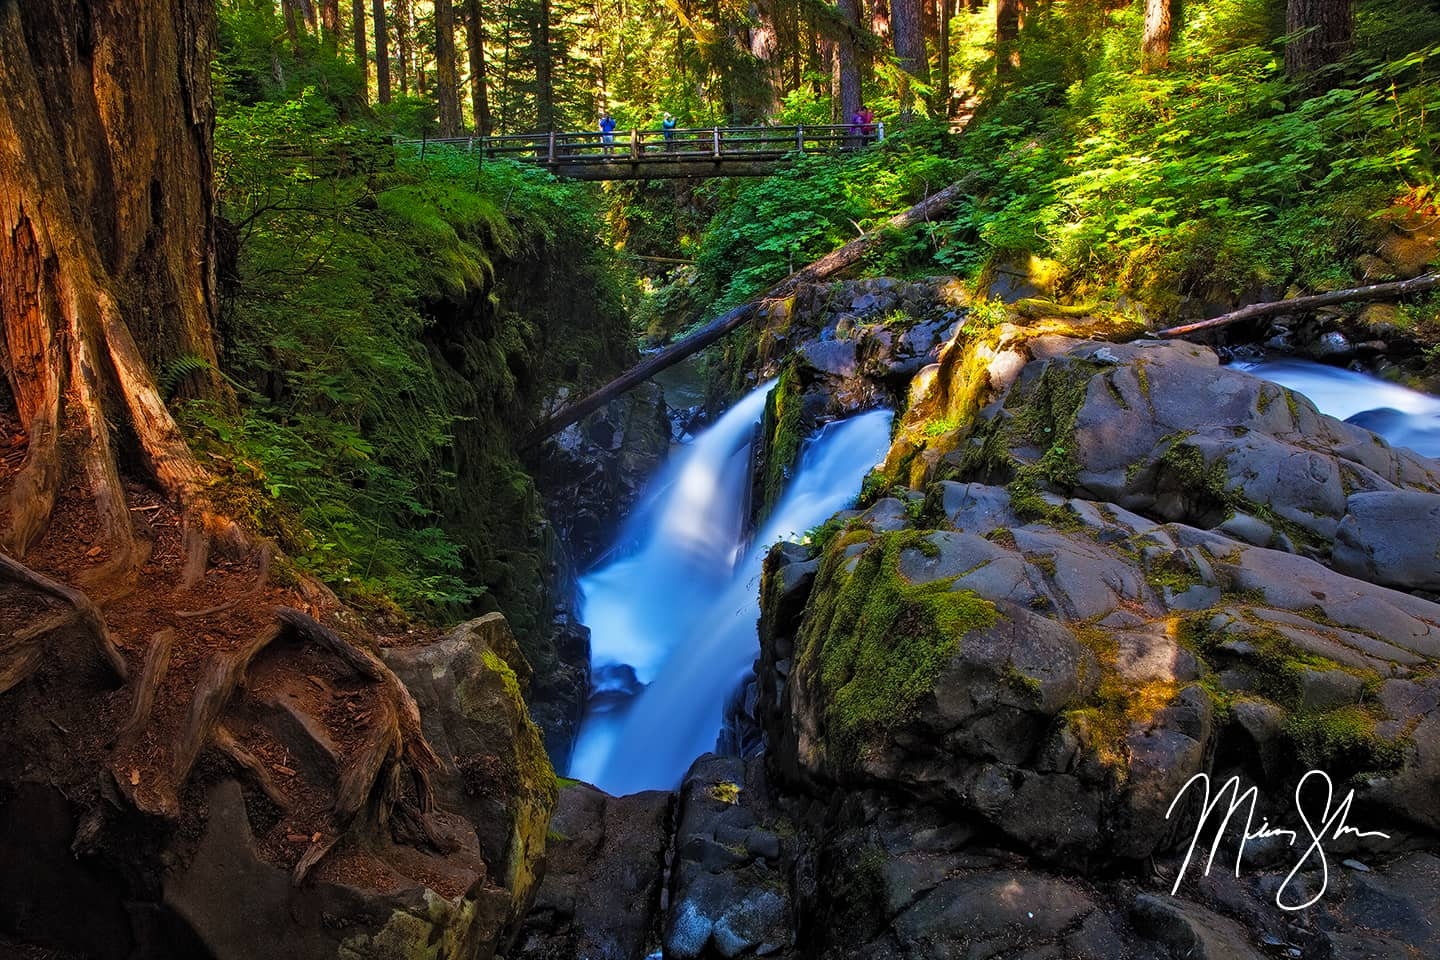 Open edition fine art print of Sol Duc Falls from Mickey Shannon Photography. Location: Sol Duc Falls, Olympic National Park, Washington, USA